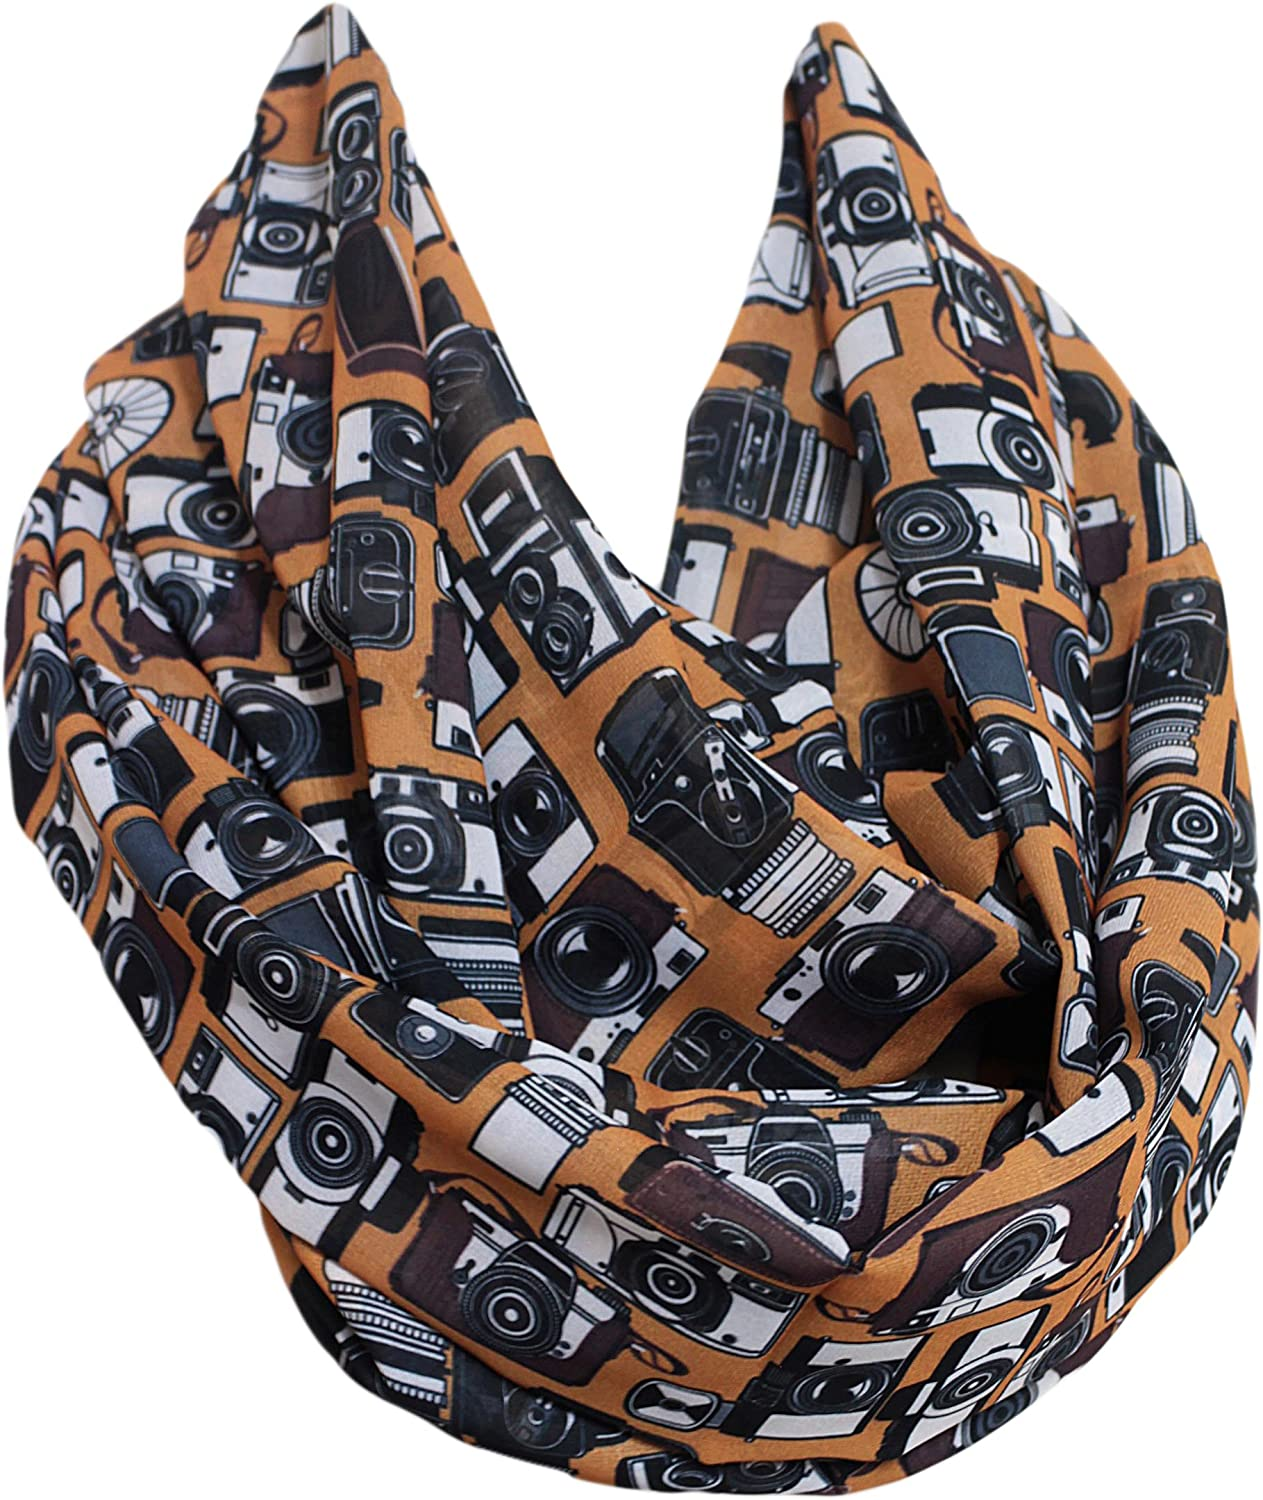 Etwoa's Camera Infinity Scarf Circle Scarf Loop Scarf